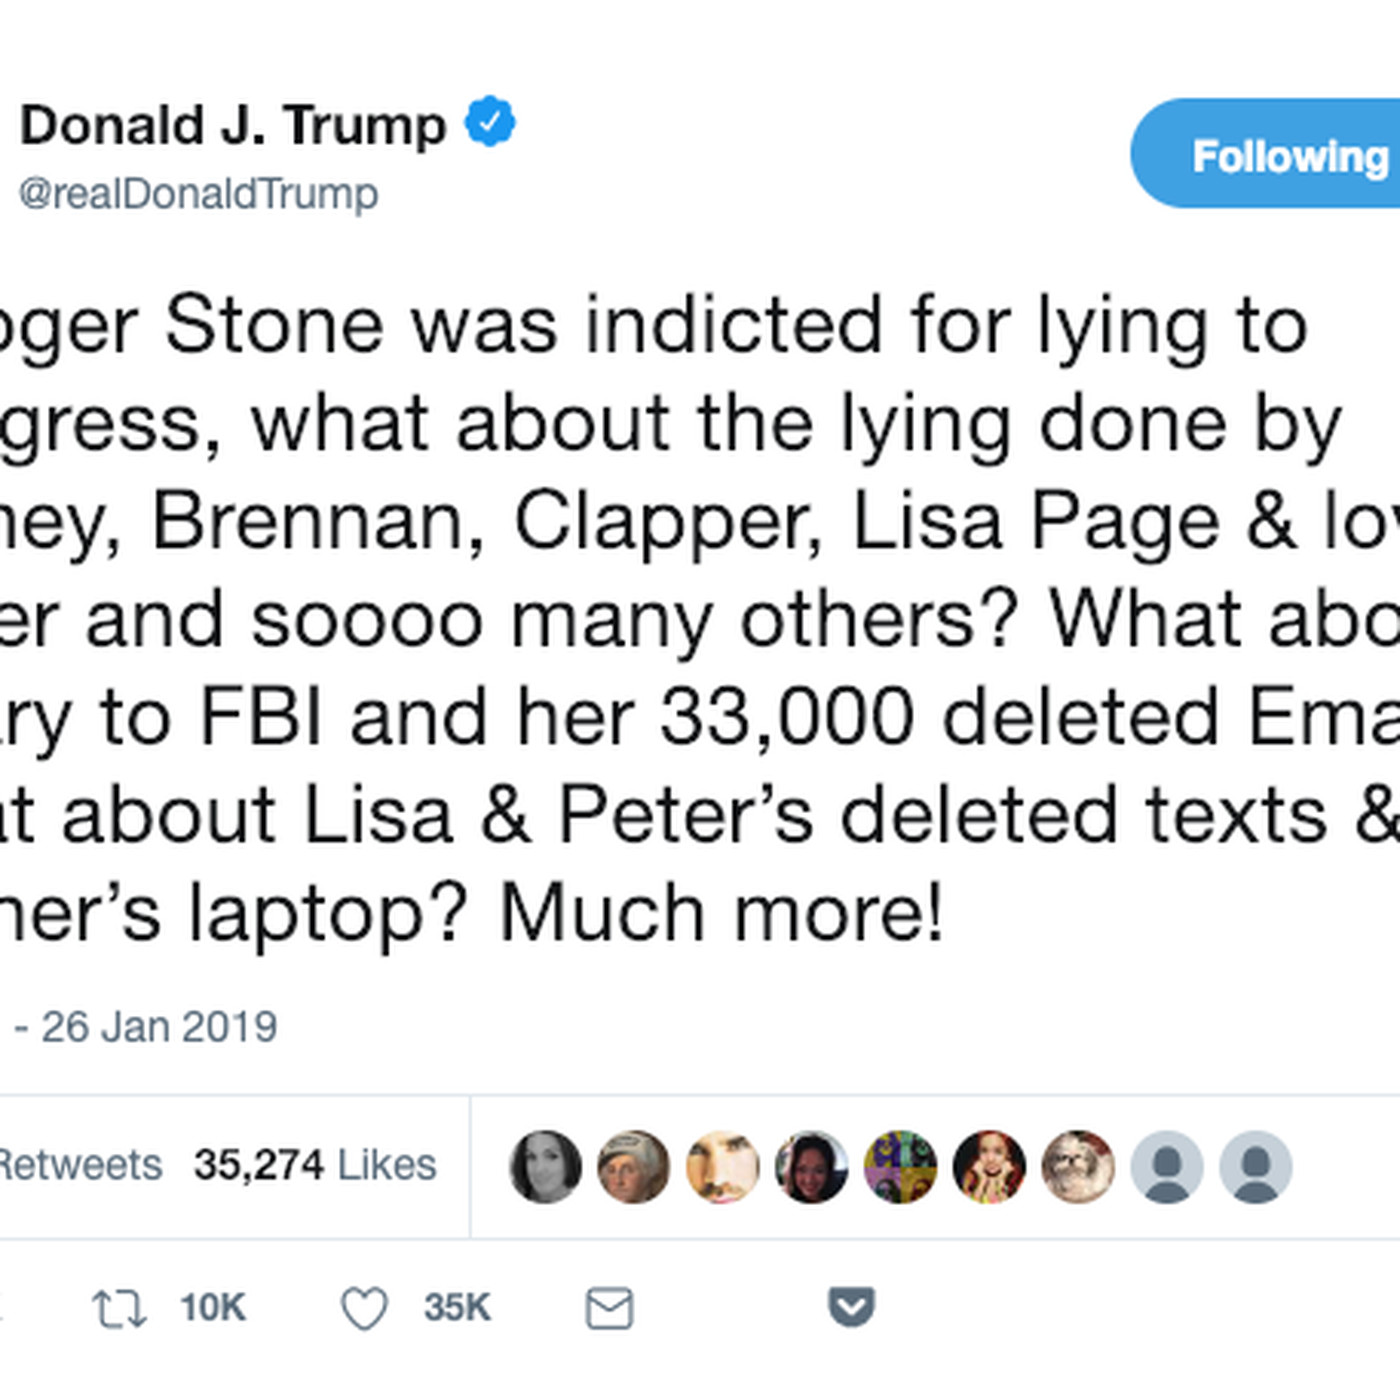 Trump responds to Roger Stone's indictment with old